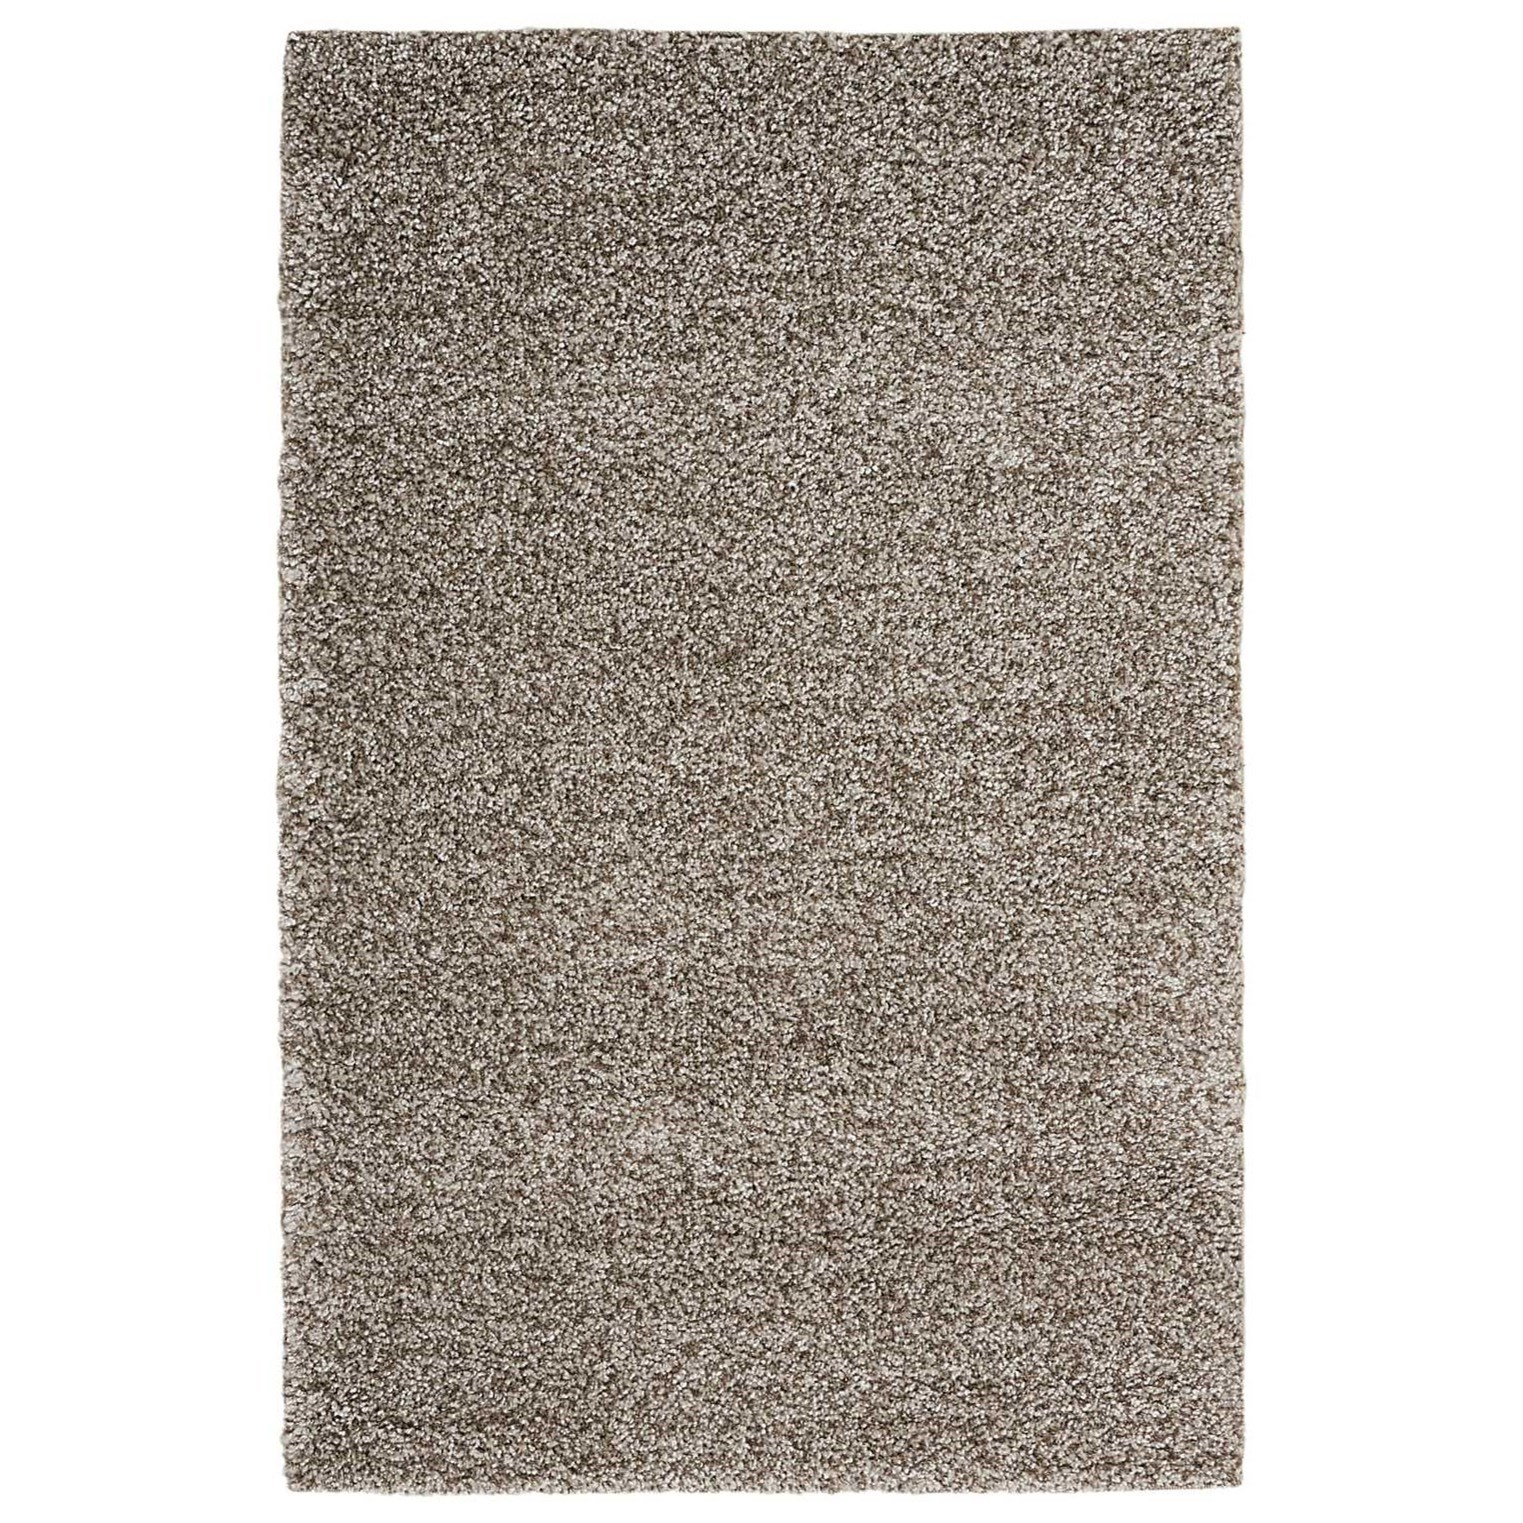 "8'2"" x 10' Stone Rectangle Rug"